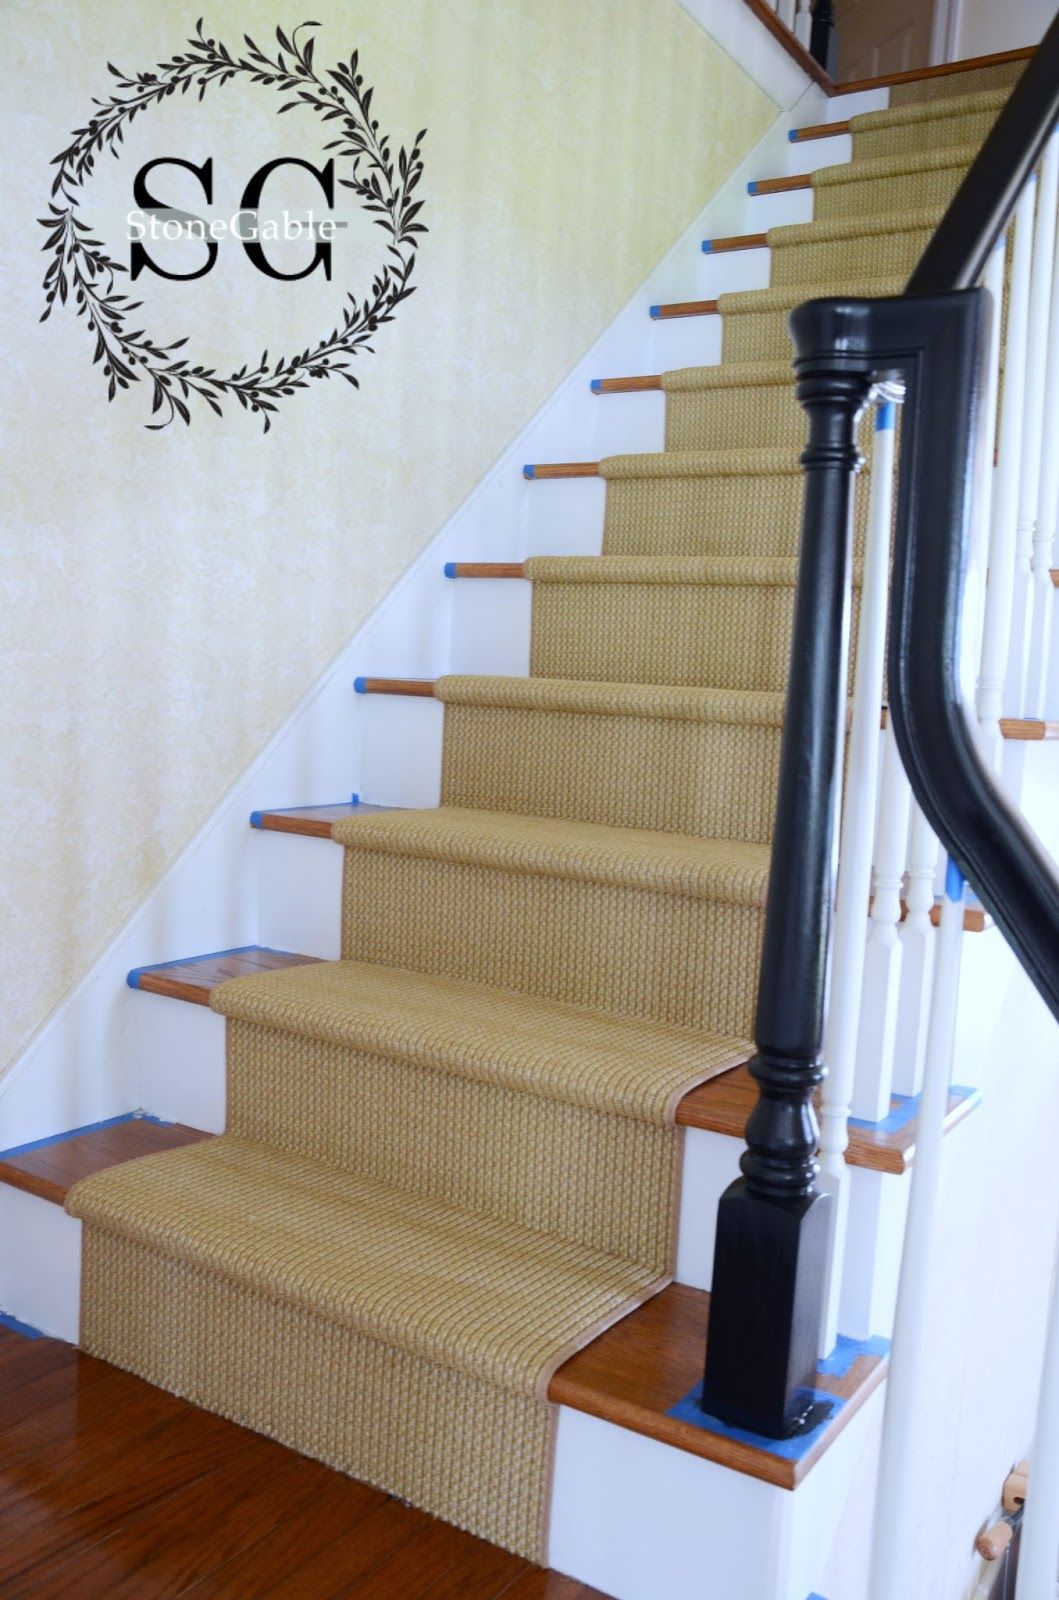 Magnificent White Banister Rails Wooden Materials And Black Wood Handle  Stairs As Well As Amazing Soft Grey Velvet Carpet For Stairs On Woods Foot  Ladders ...